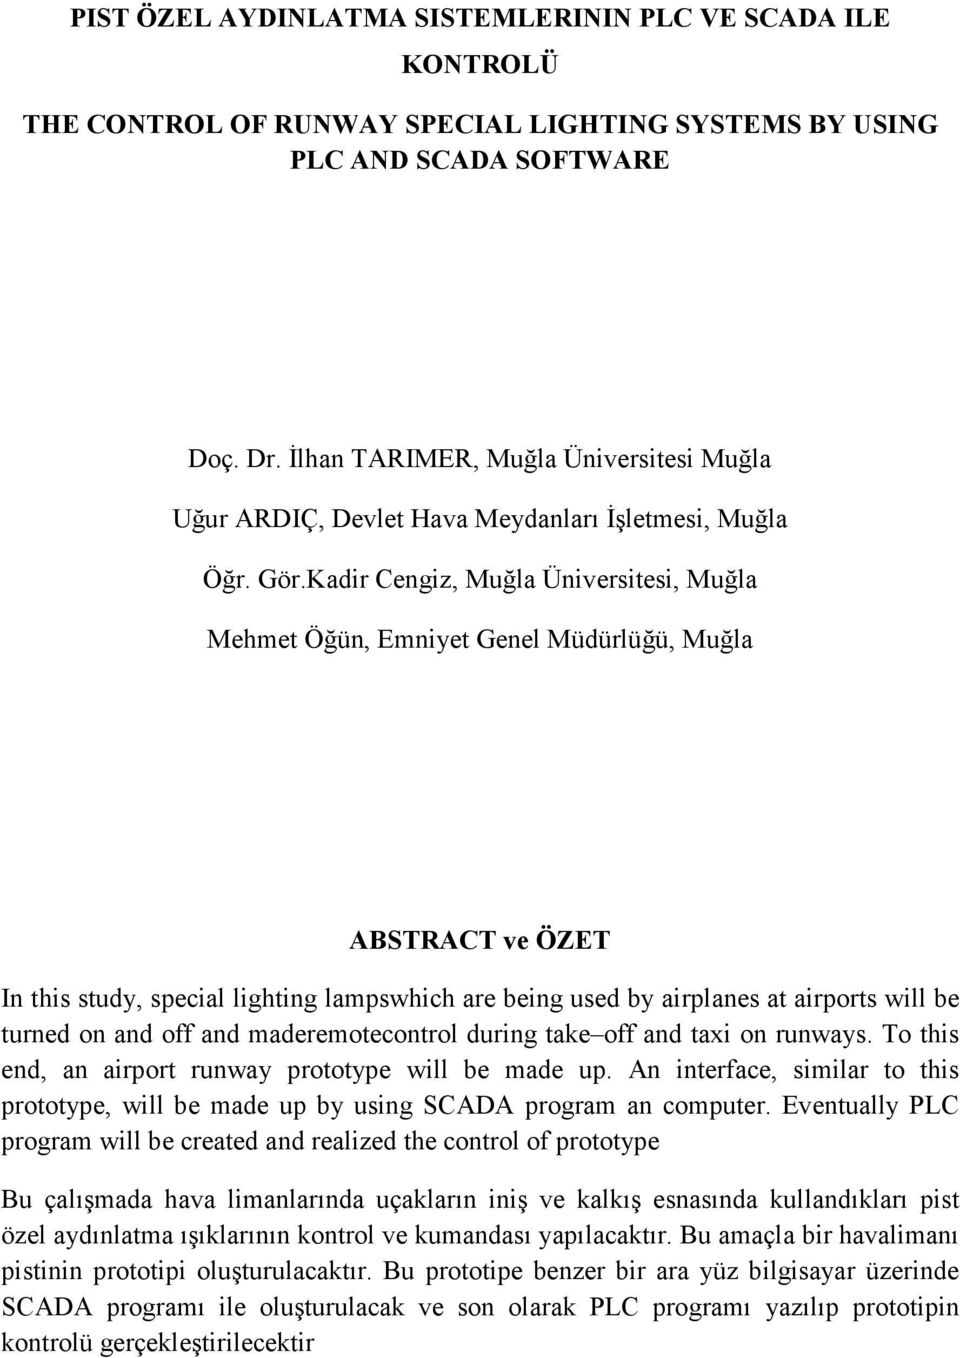 Kadir Cengiz, Muğla Üniversitesi, Muğla Mehmet Öğün, Emniyet Genel Müdürlüğü, Muğla ABSTRACT ve ÖZET In this study, special lighting lampswhich are being used by airplanes at airports will be turned